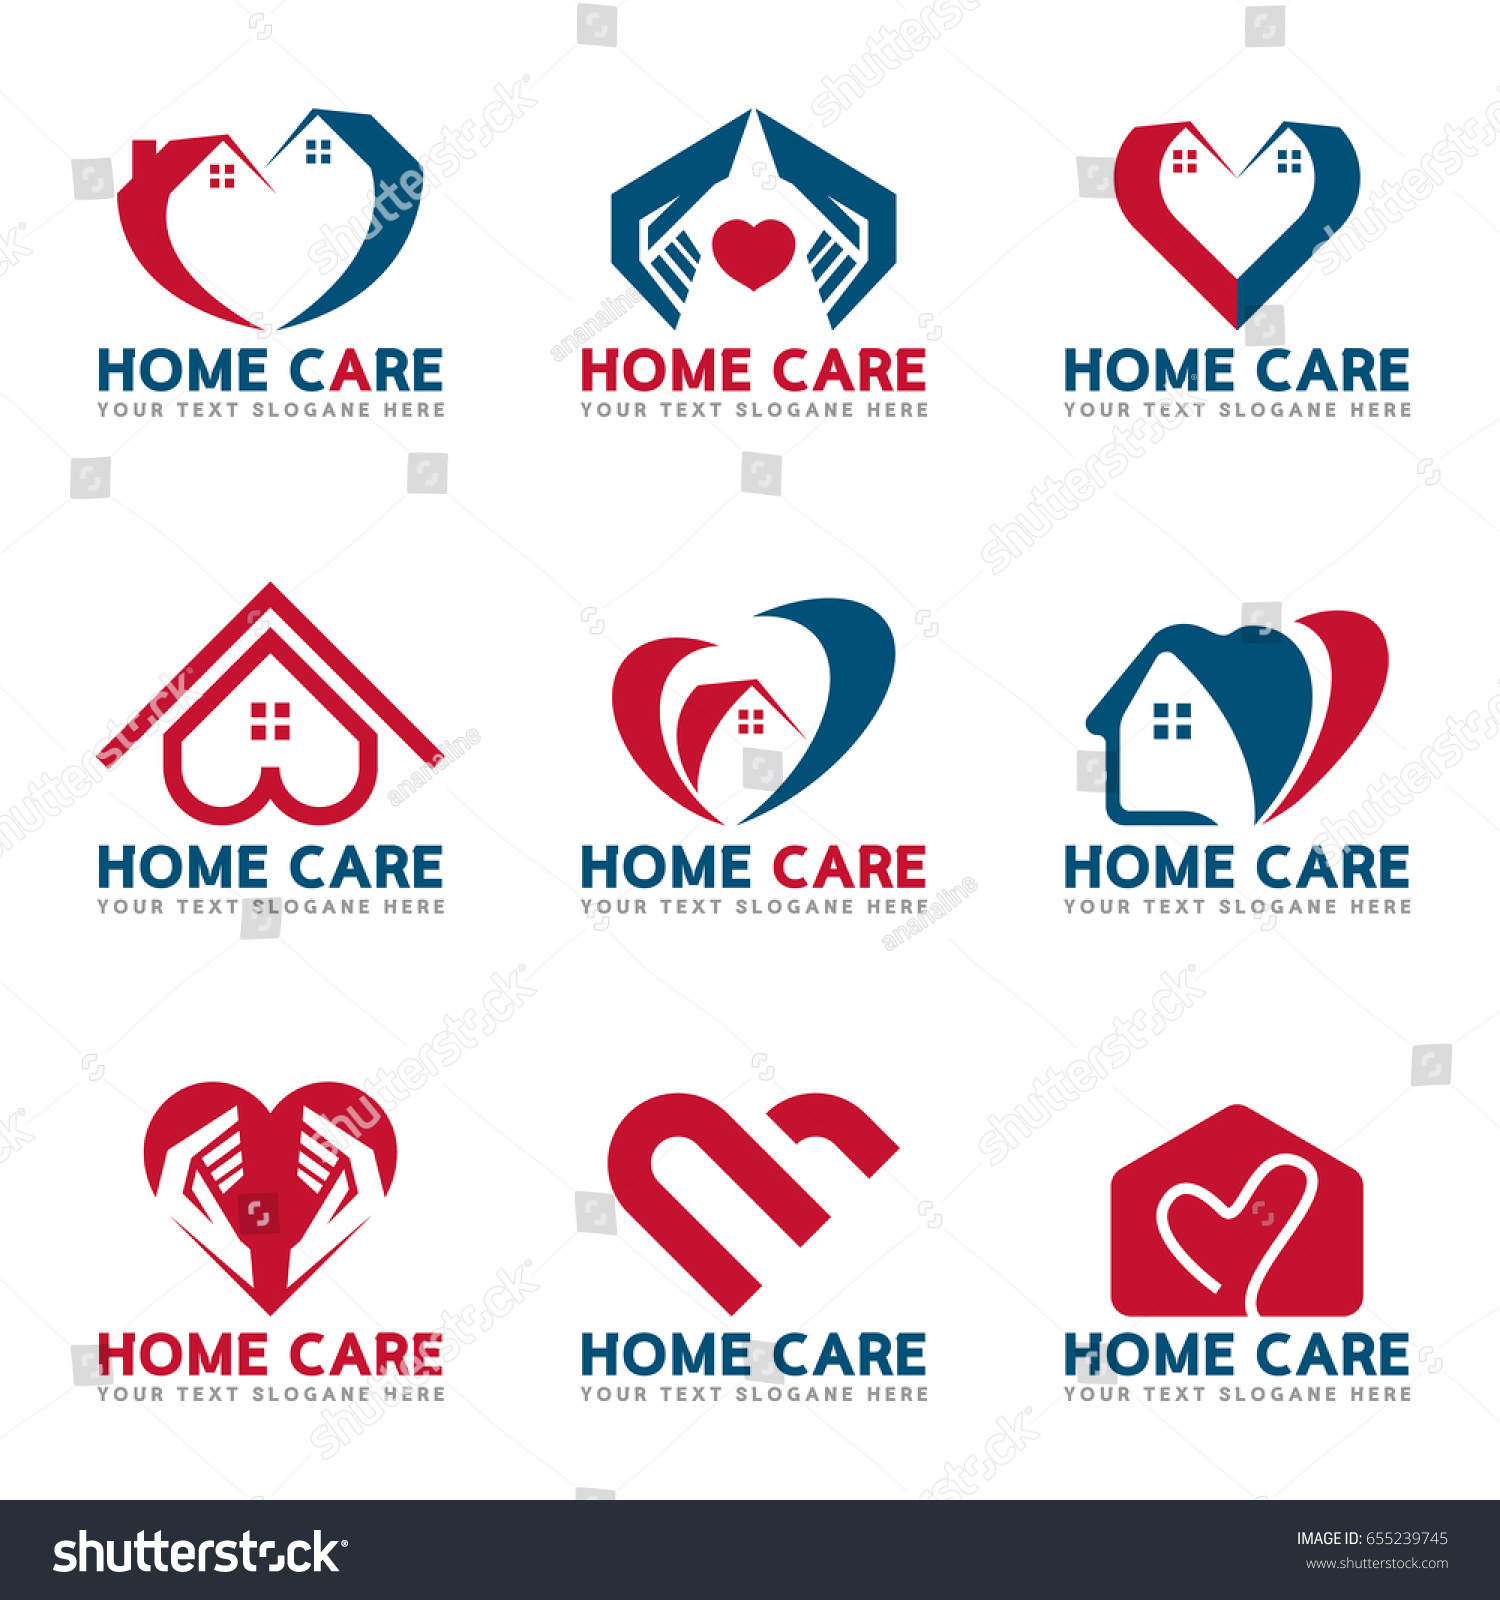 Red blue home heart care logo stock vector 655239745 shutterstock - Home health care logo design ...